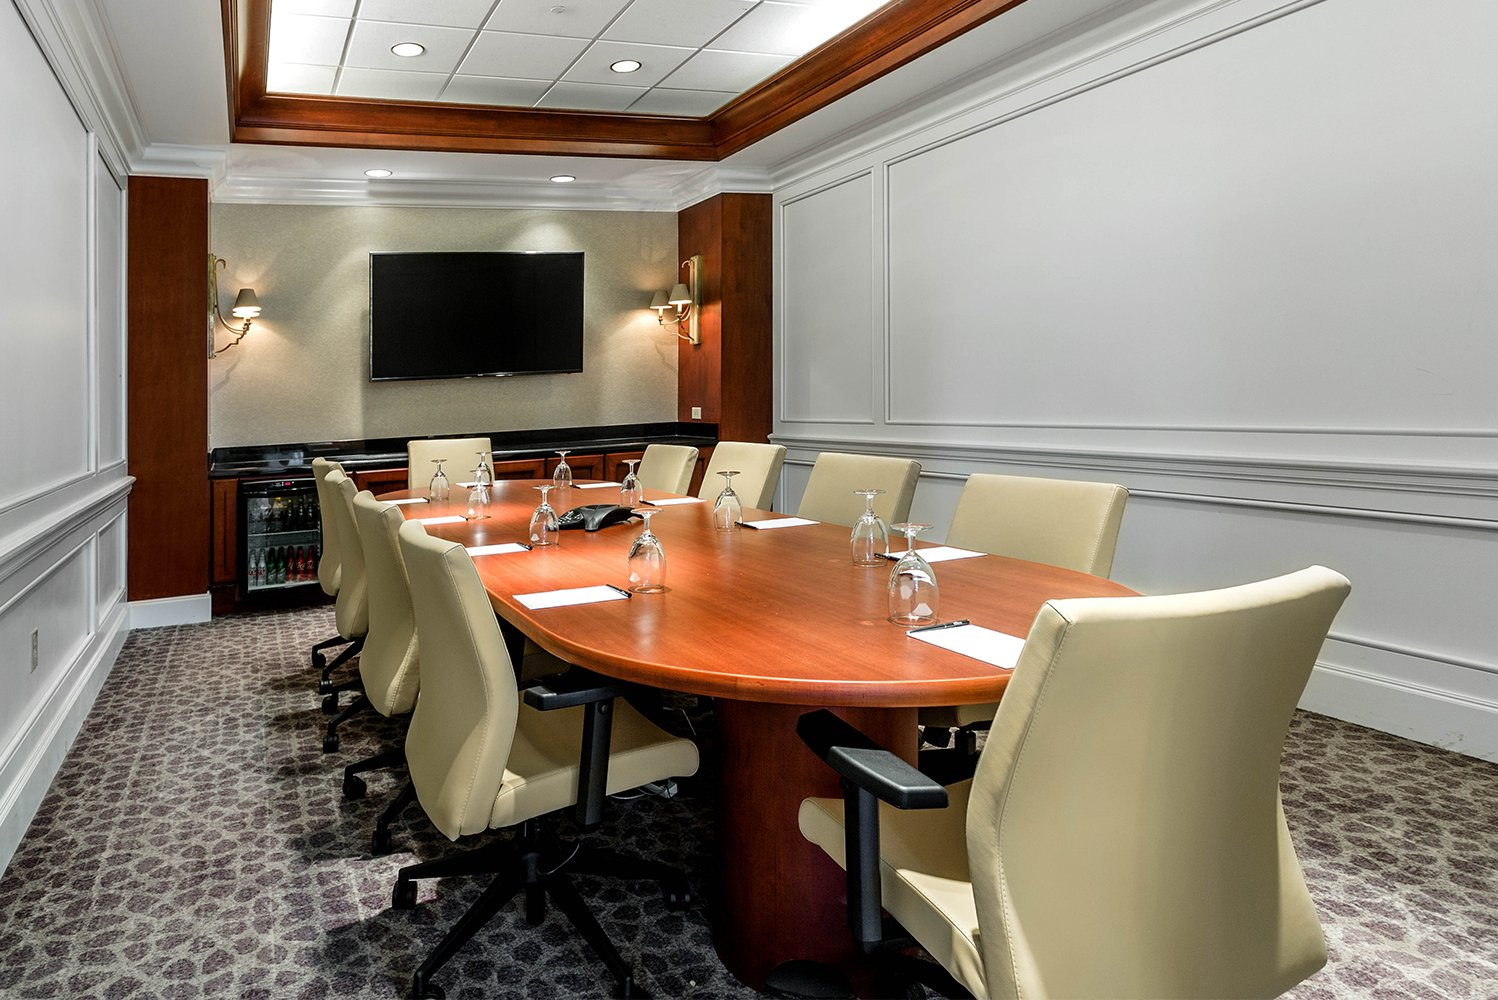 The Hilton Columbus at Easton added over 9,000 additional square feet of meeting rooms and event space.